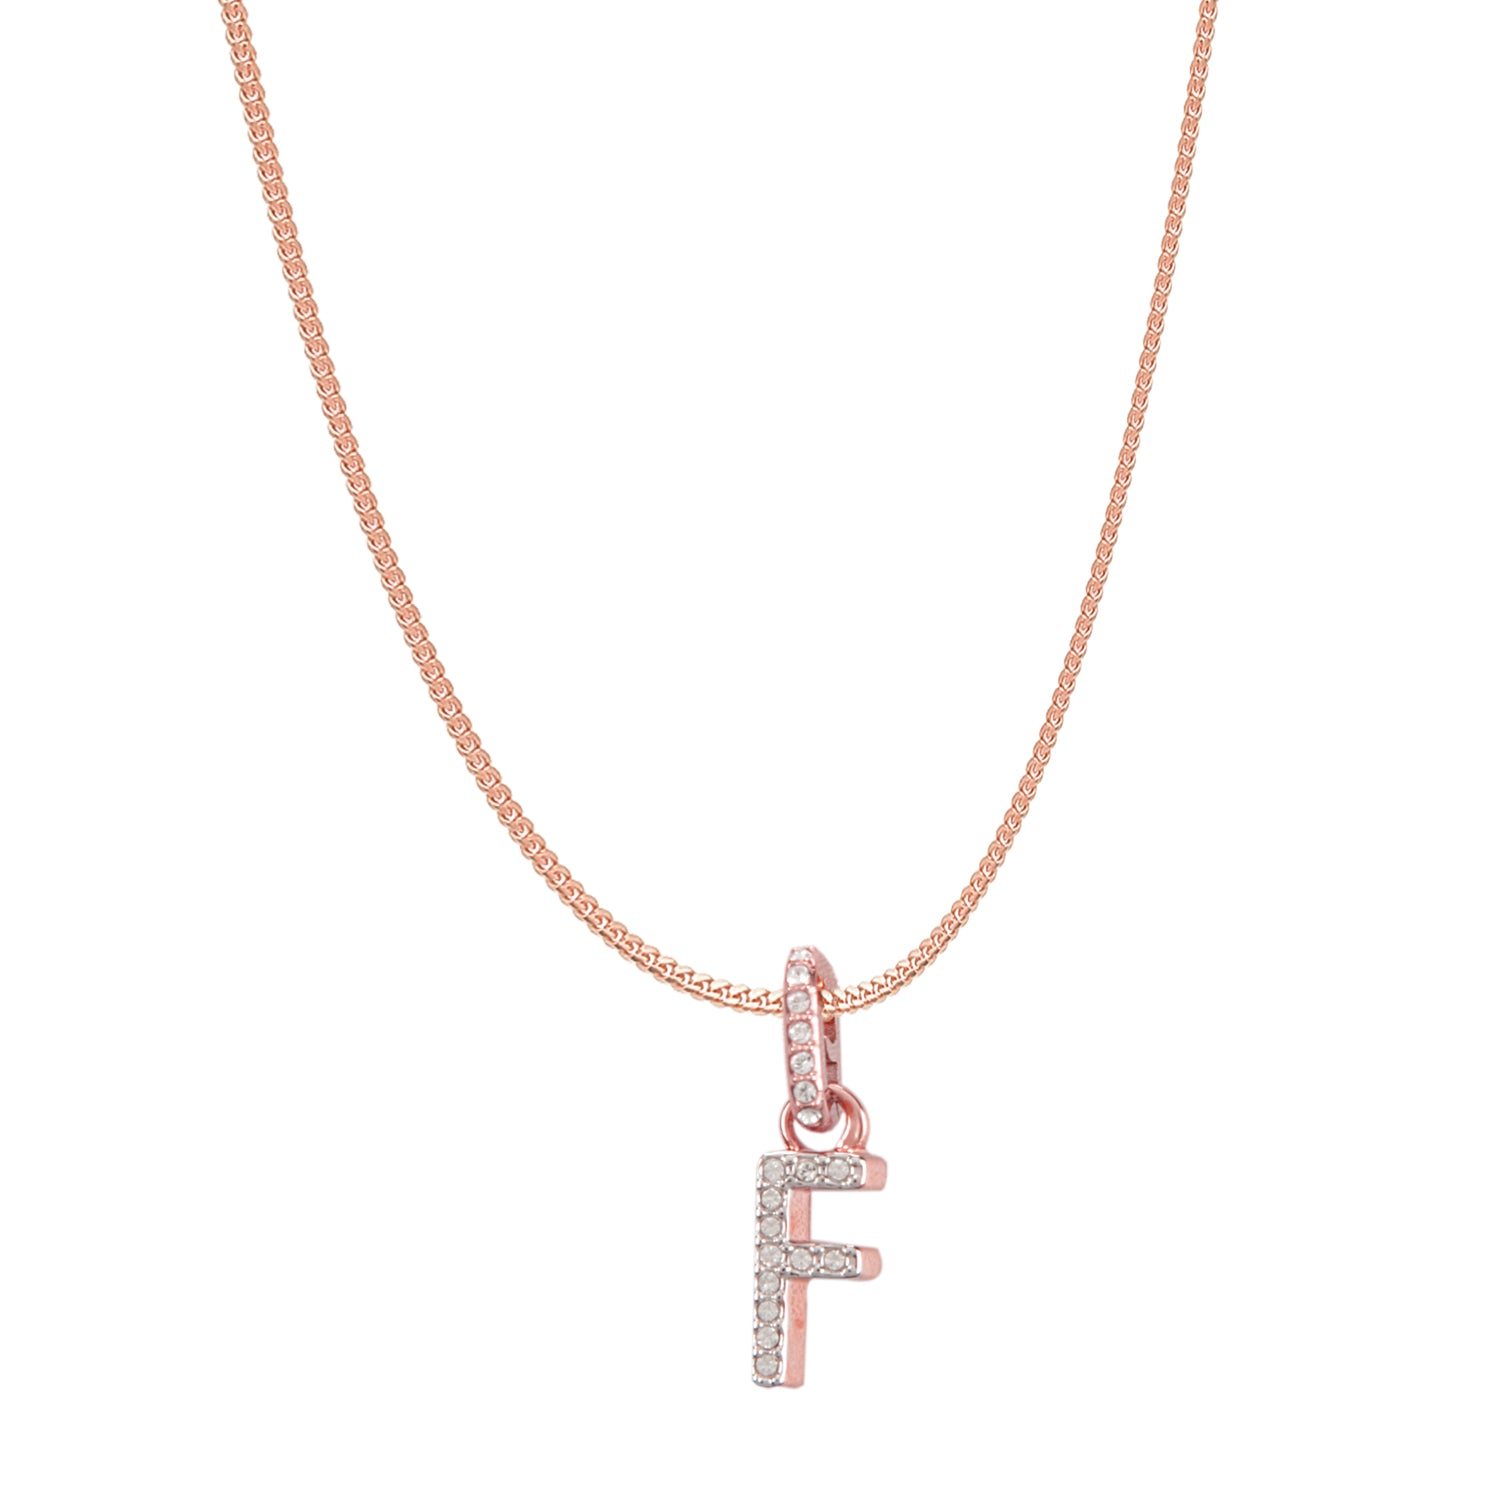 Swarovski Remix Collection F White Charm In Rose-Gold Tone Plated | Shop Luxury Swarovski Charm Online